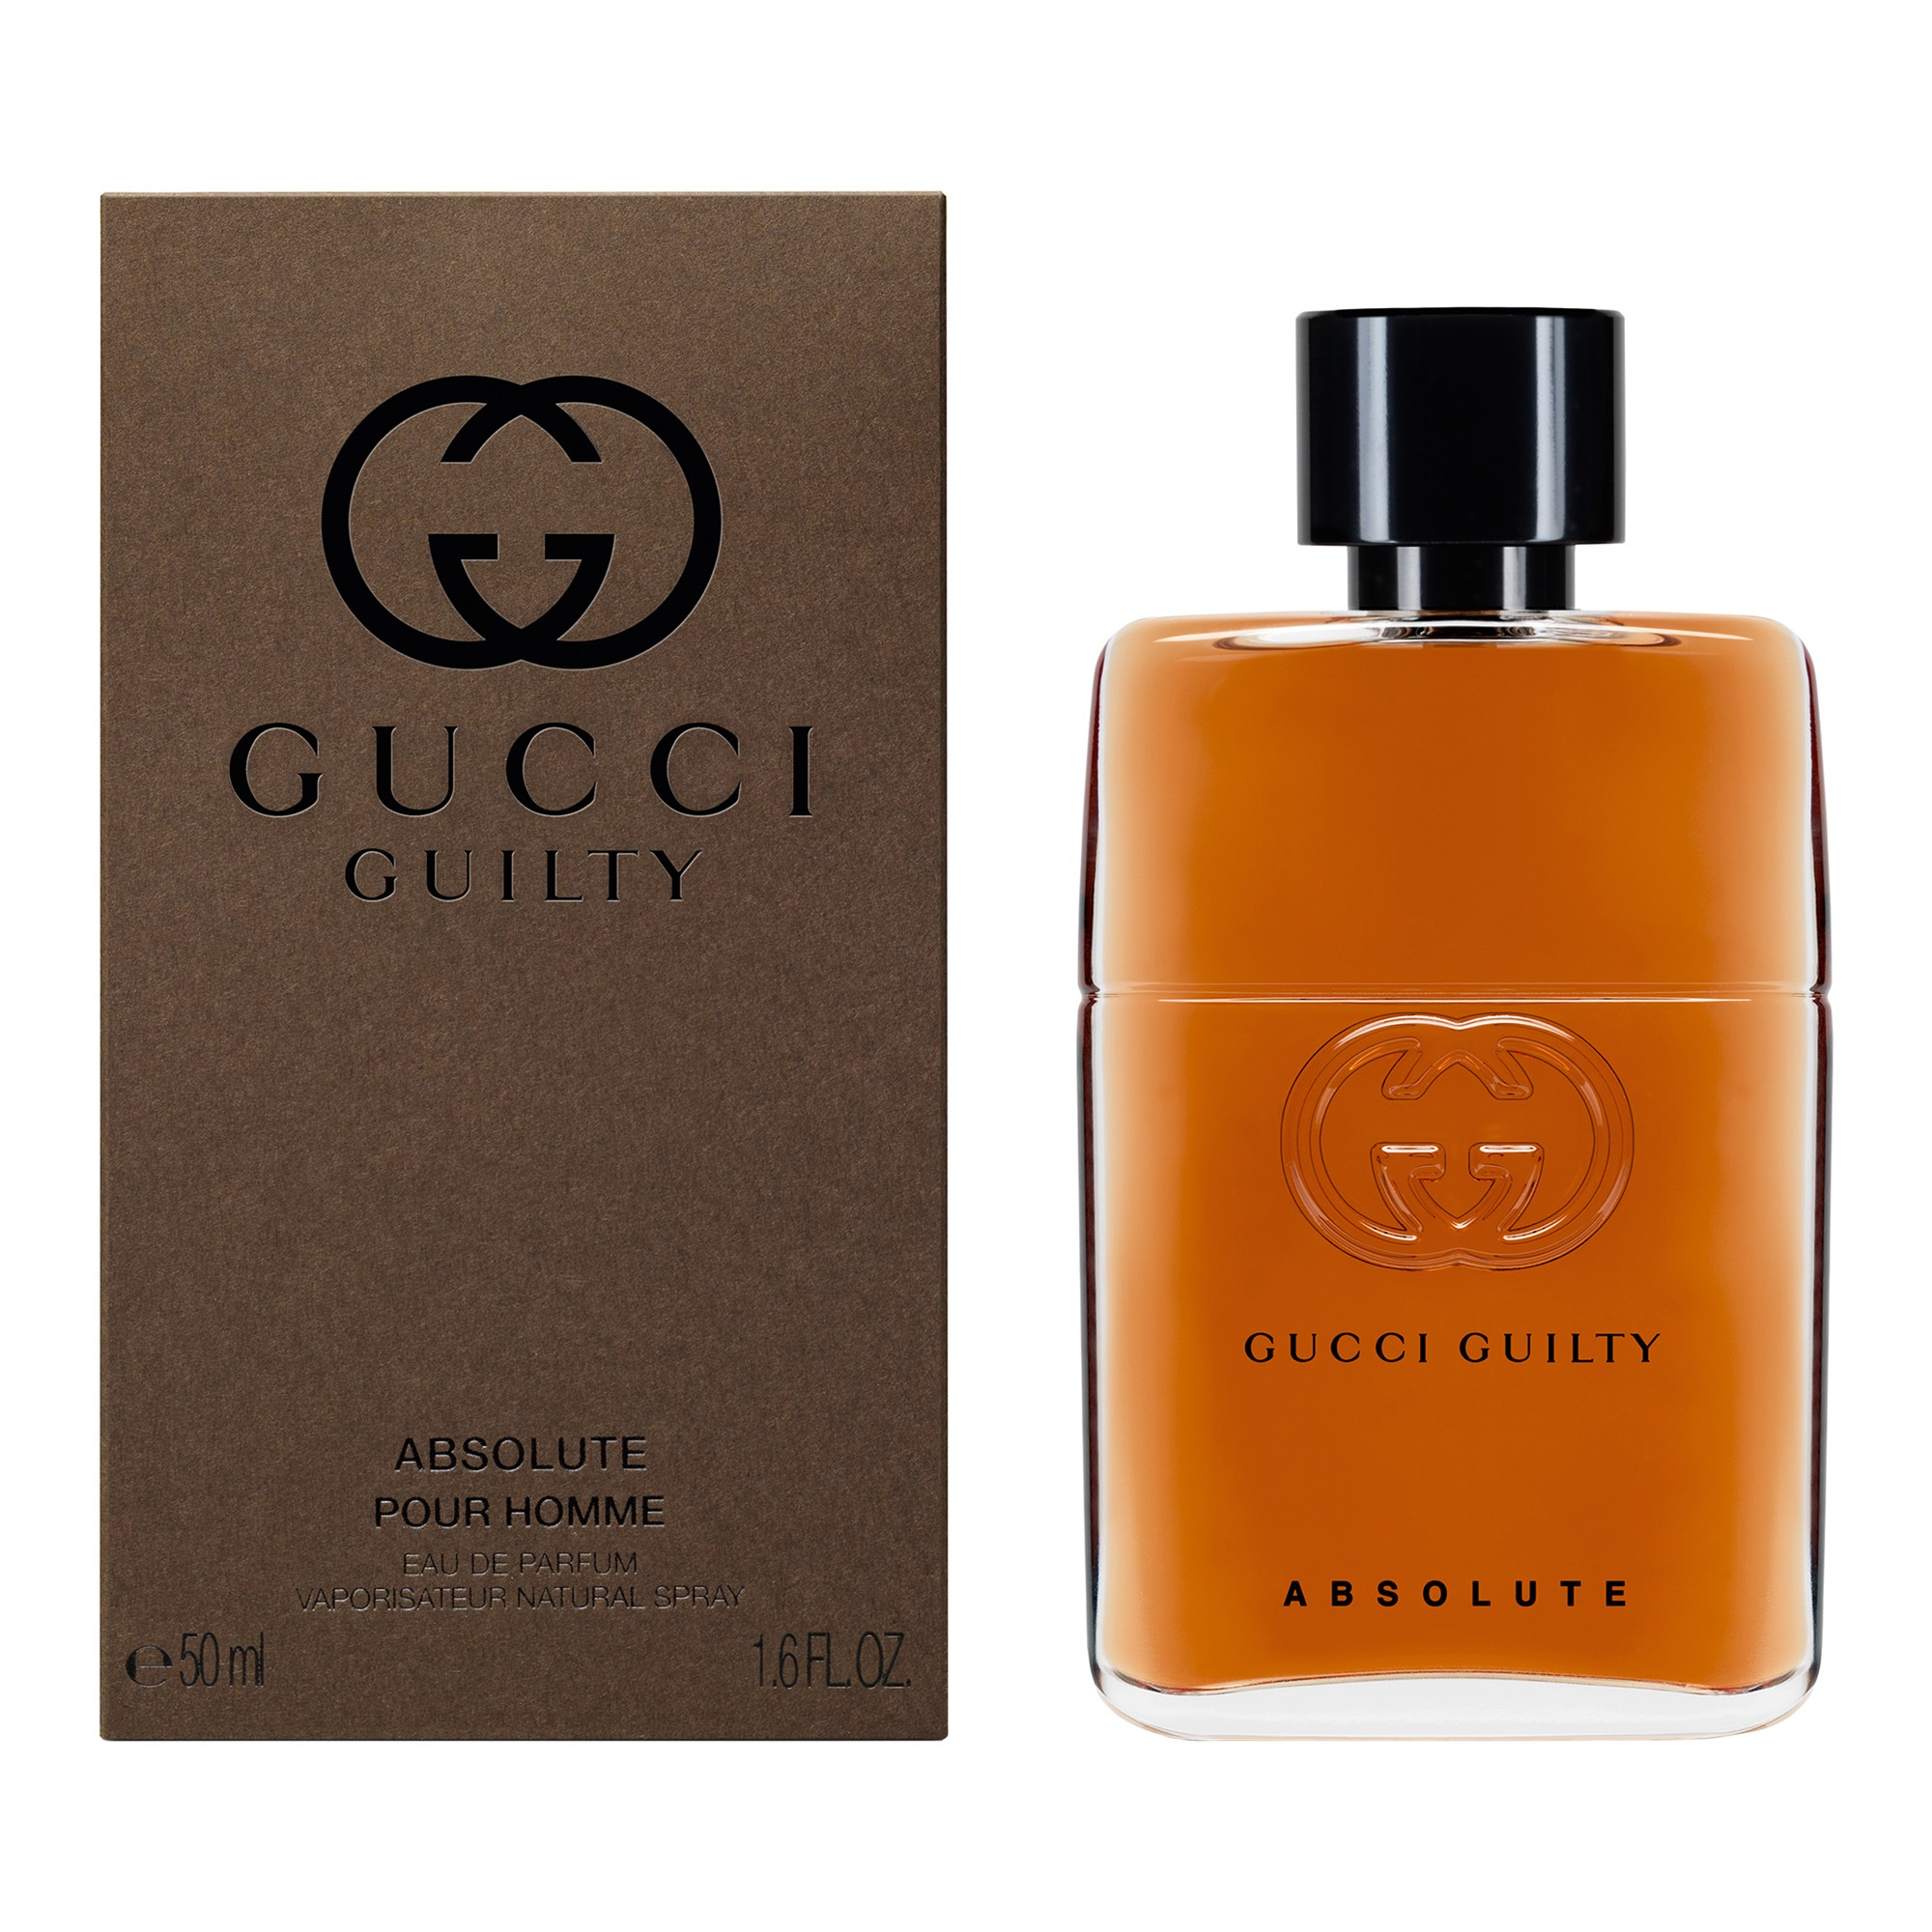 gucci guilty pour homme absolute eau de parfum 50 ml vapo. Black Bedroom Furniture Sets. Home Design Ideas